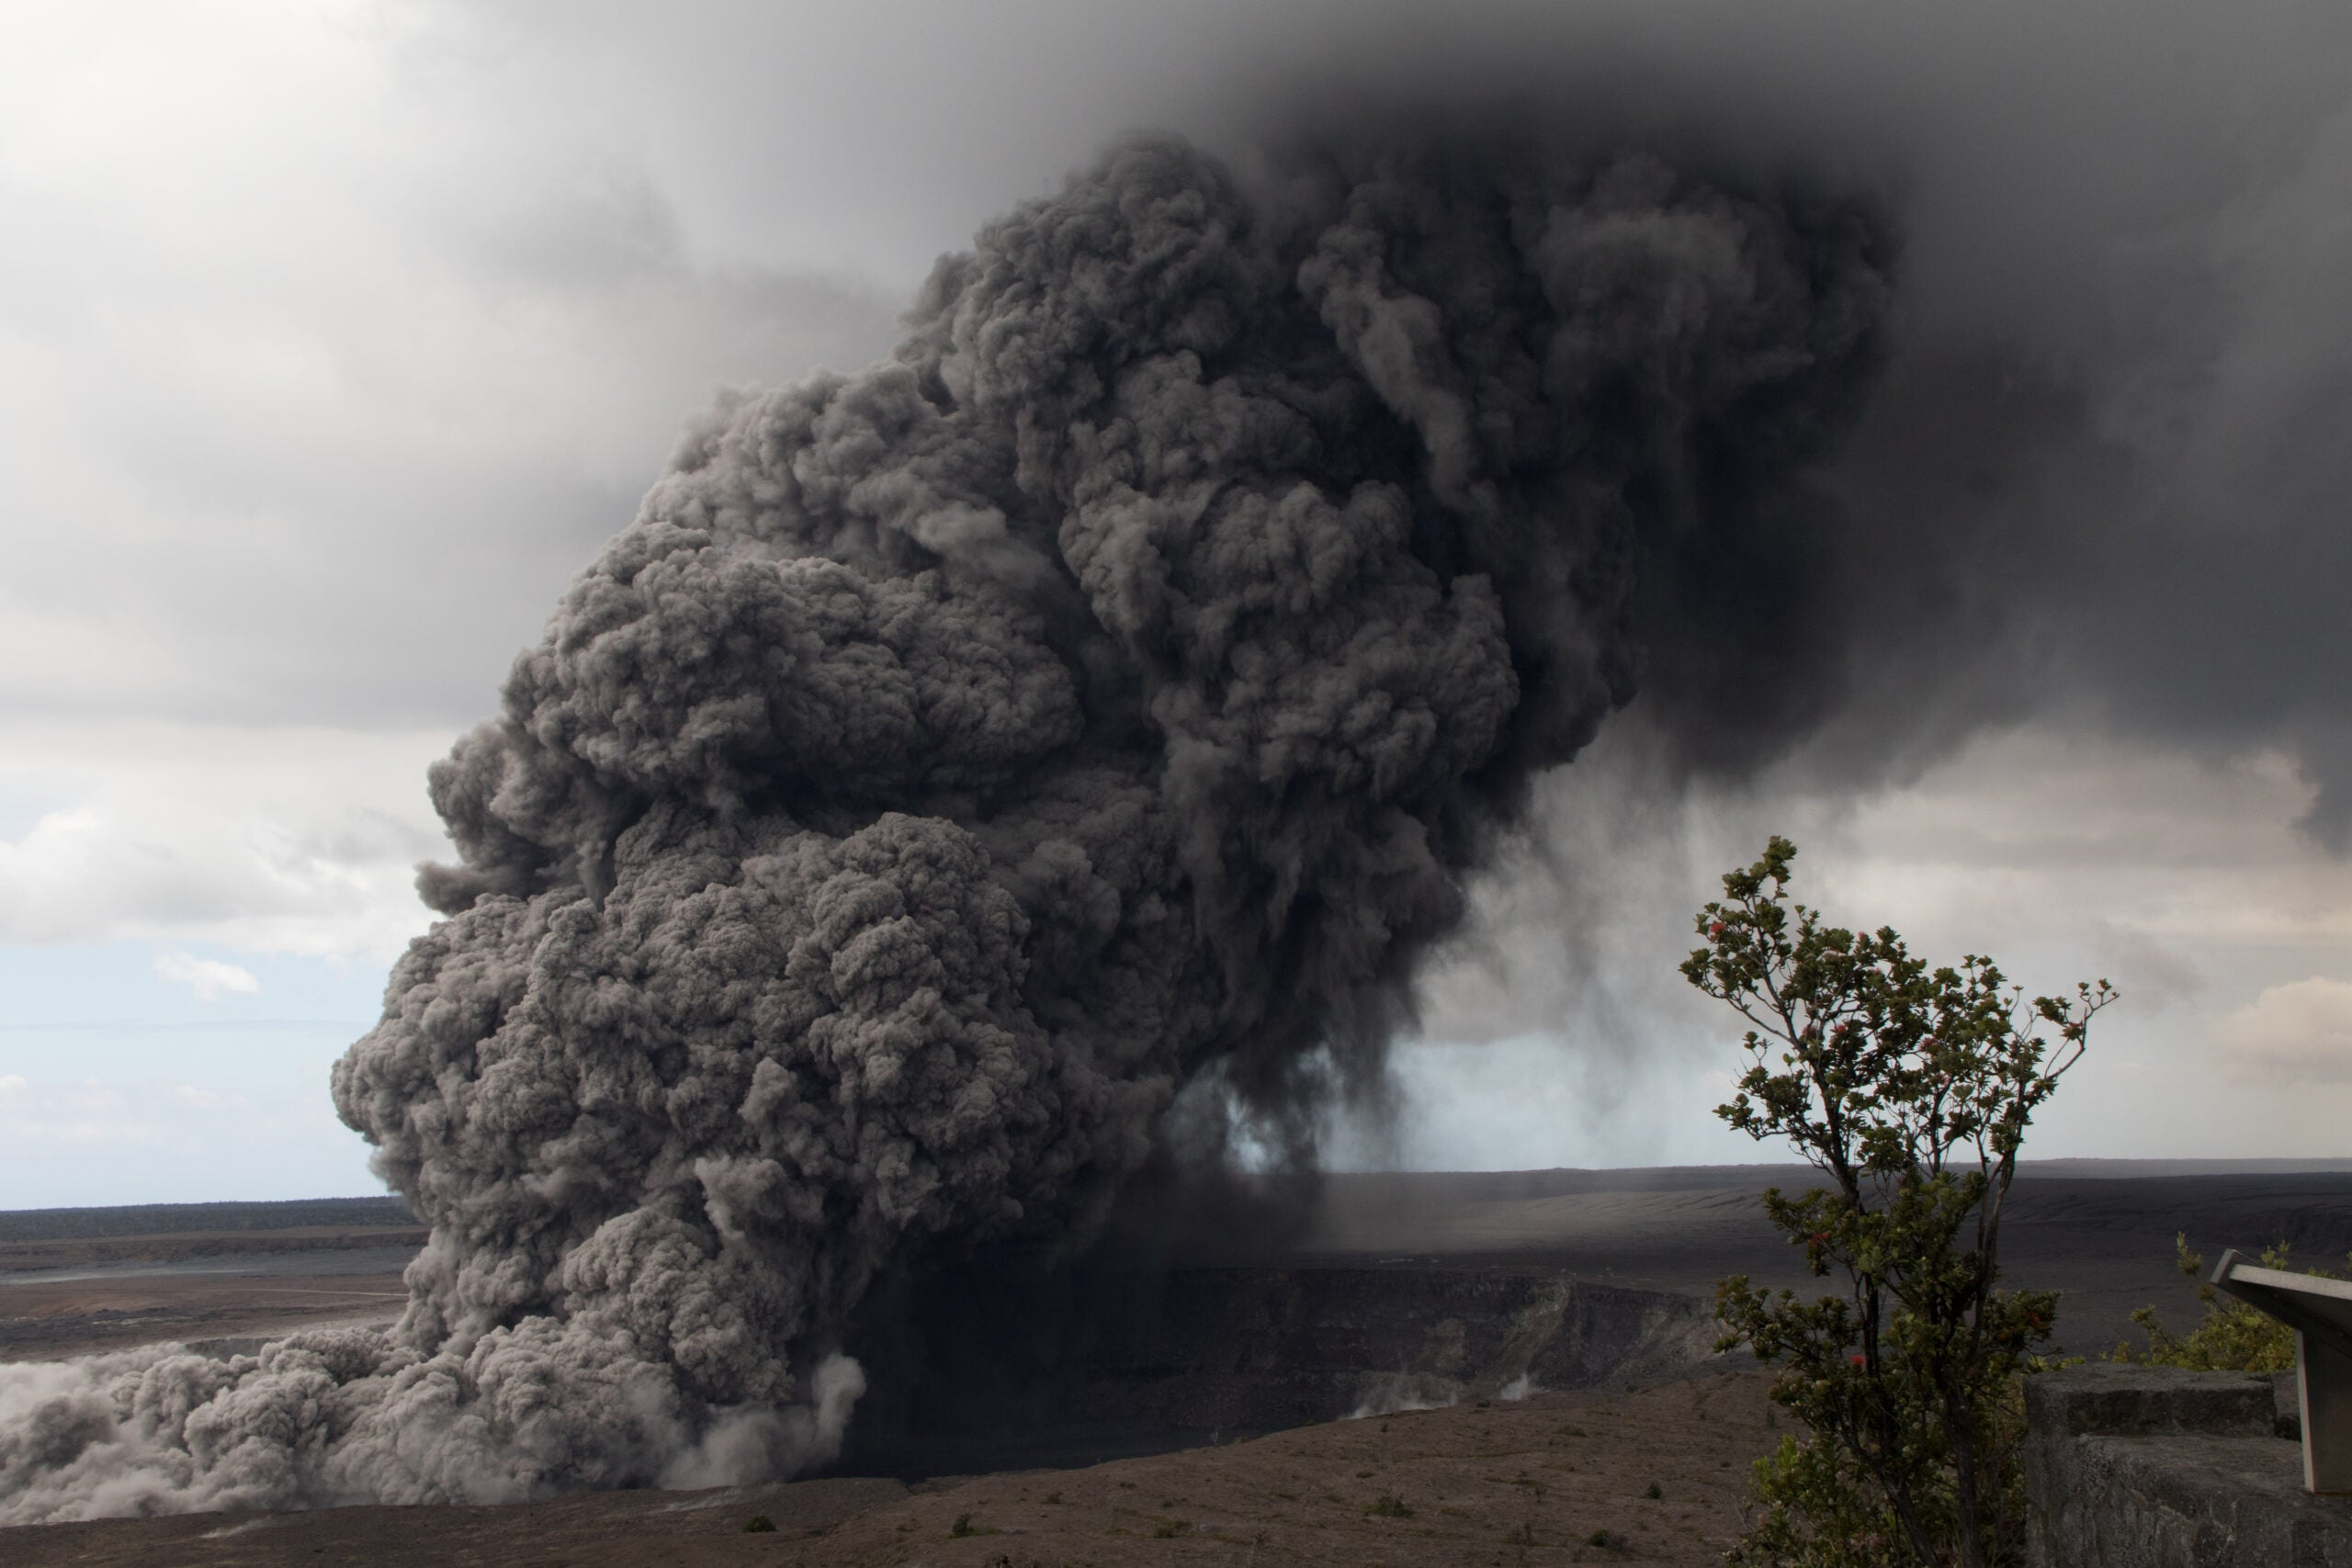 cloud of dark smoke rising out of the ground towards white clouds